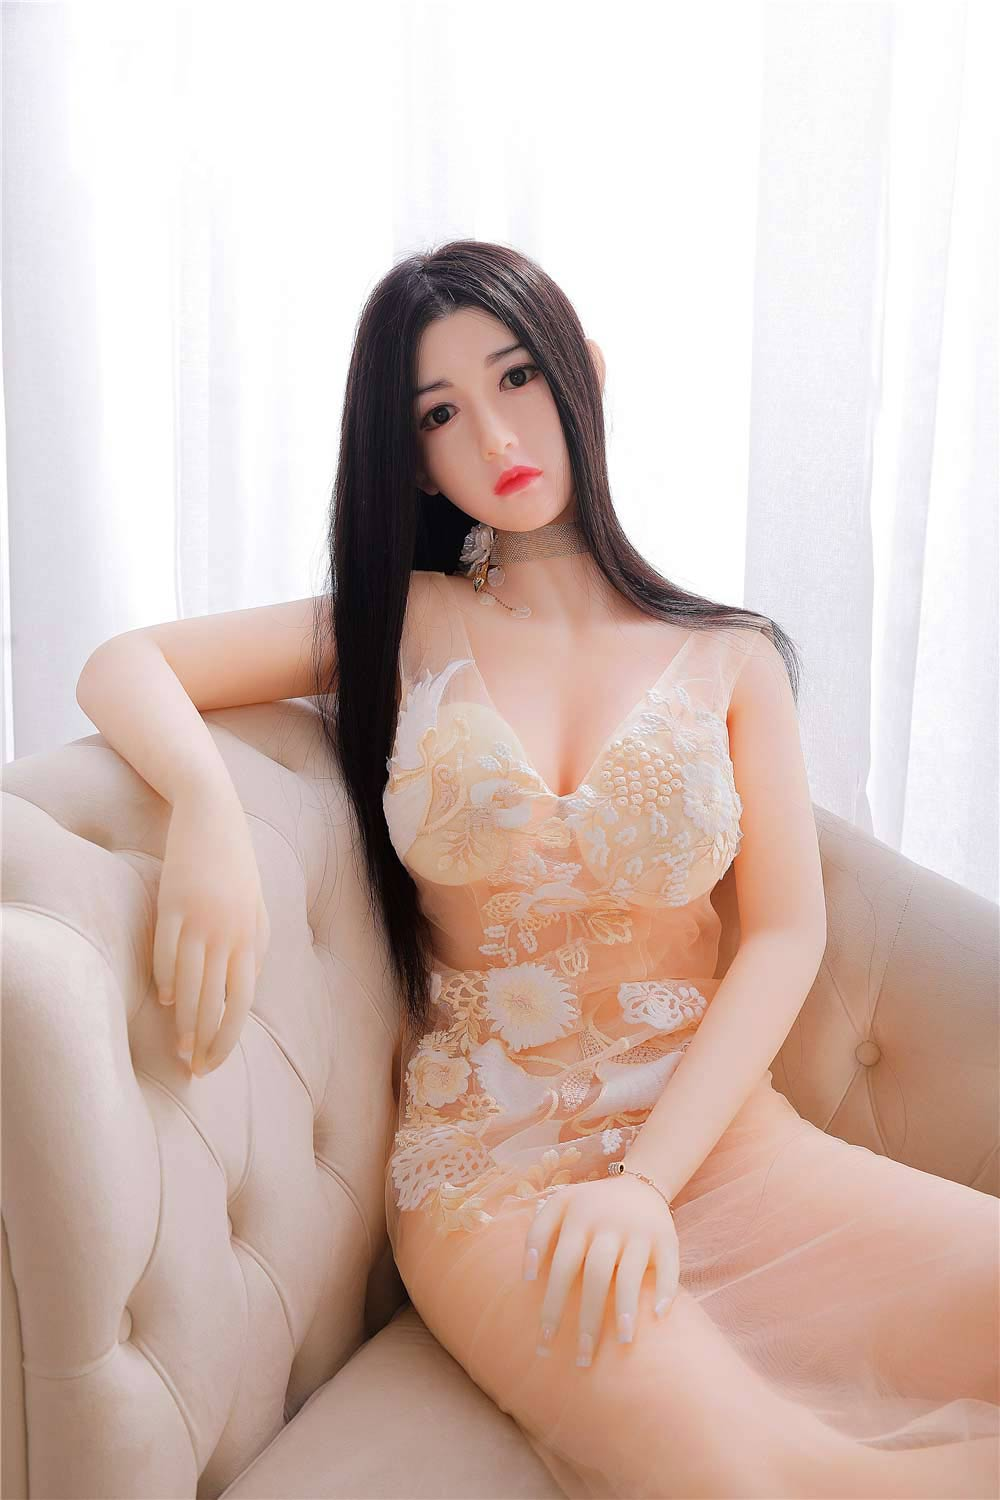 silicoen-sex-doll-sitting-on-a-sofa